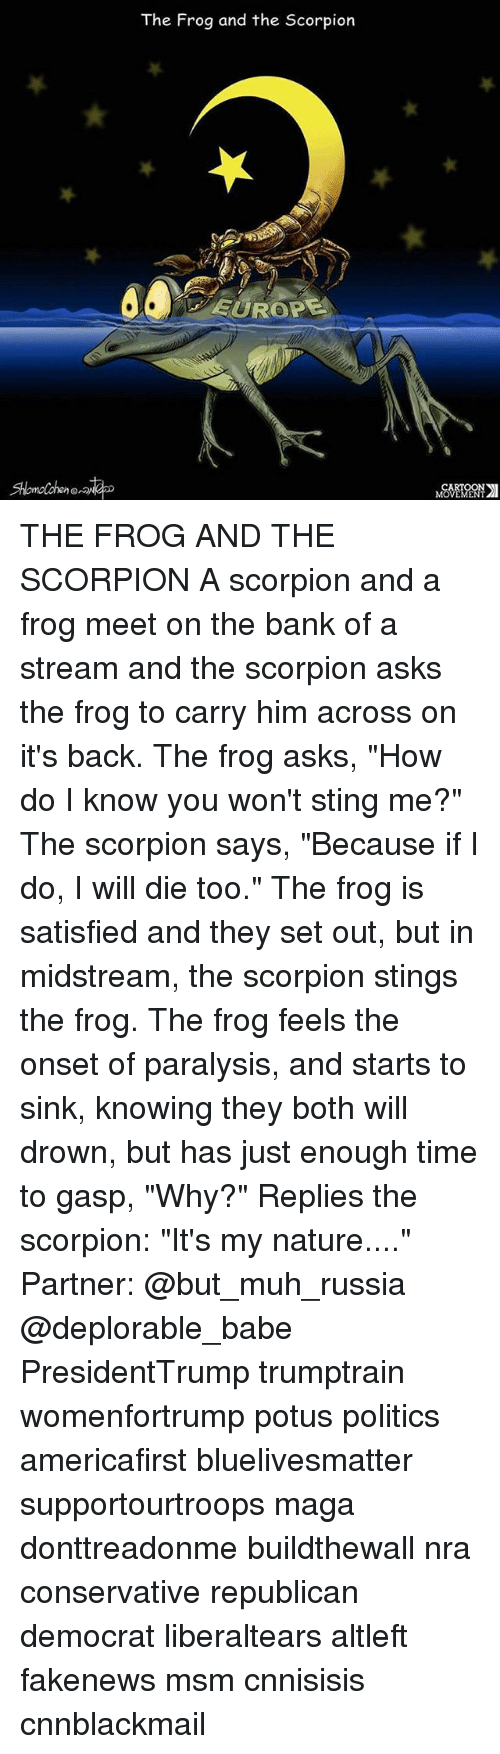 """Cnnblackmail: The Frog and the Scorpion  EUROP  Shlomolchen  CARTOON  MOVEMENT THE FROG AND THE SCORPION A scorpion and a frog meet on the bank of a stream and the scorpion asks the frog to carry him across on it's back. The frog asks, """"How do I know you won't sting me?"""" The scorpion says, """"Because if I do, I will die too."""" The frog is satisfied and they set out, but in midstream, the scorpion stings the frog. The frog feels the onset of paralysis, and starts to sink, knowing they both will drown, but has just enough time to gasp, """"Why?"""" Replies the scorpion: """"It's my nature...."""" Partner: @but_muh_russia @deplorable_babe PresidentTrump trumptrain womenfortrump potus politics americafirst bluelivesmatter supportourtroops maga donttreadonme buildthewall nra conservative republican democrat liberaltears altleft fakenews msm cnnisisis cnnblackmail"""